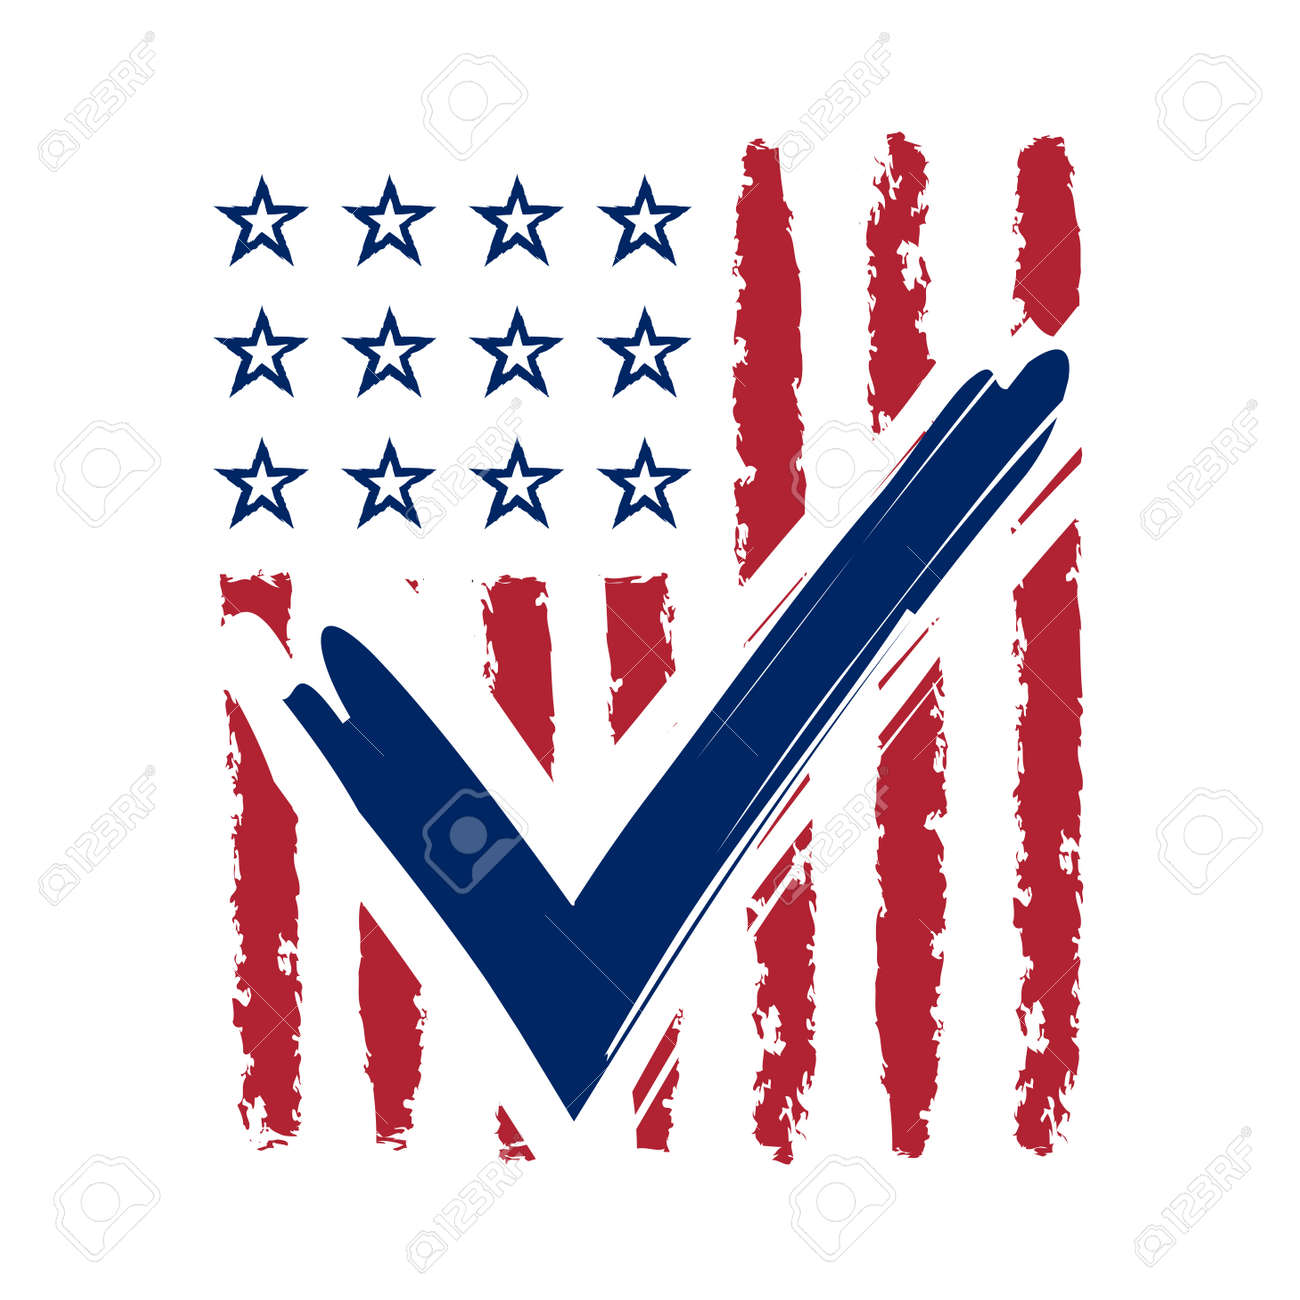 Presidential election usa sign blue and red design on white presidential election usa sign blue and red design on white background for voting campaign biocorpaavc